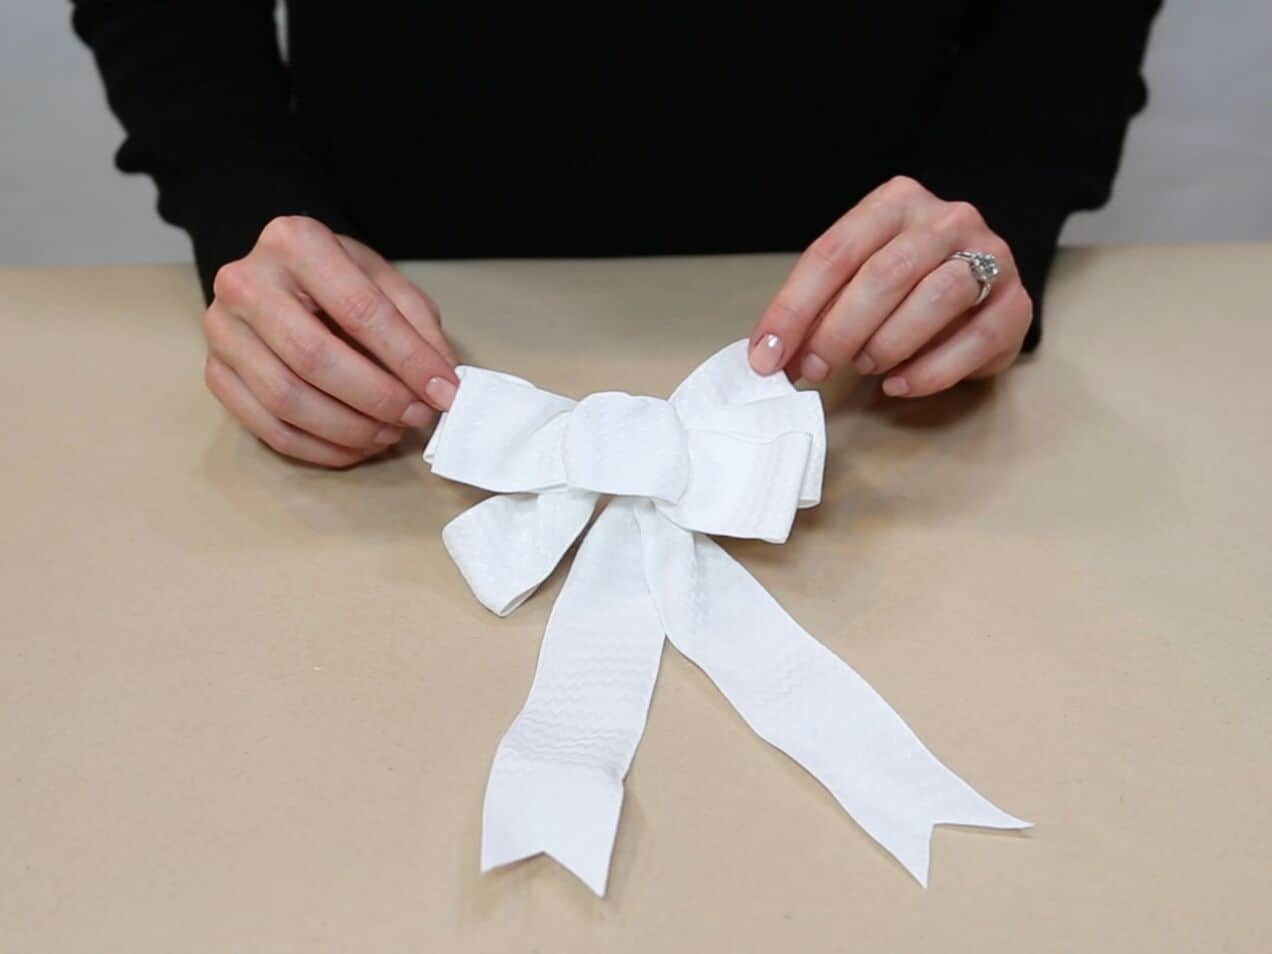 How to Make a Bow Out of Wired Ribbon